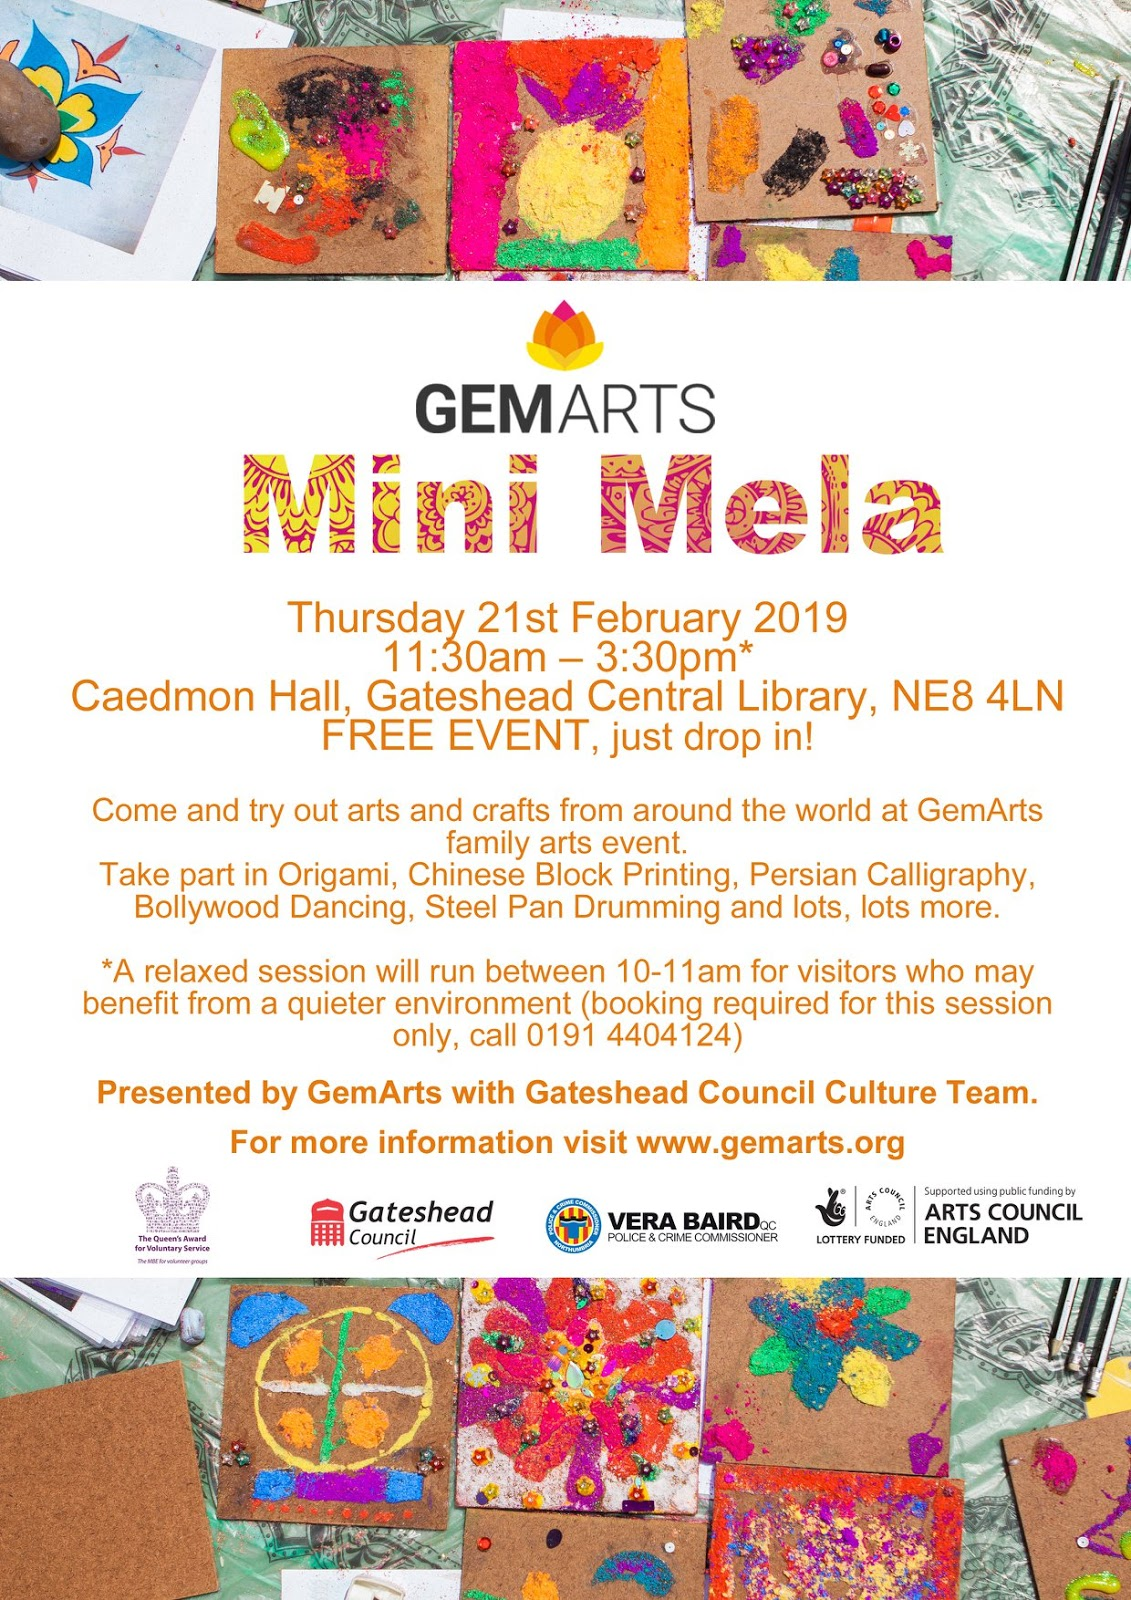 Gateshead ALive - 10 Events For Tweens, Teens & Little Ones This Spring  - GemArts Mela